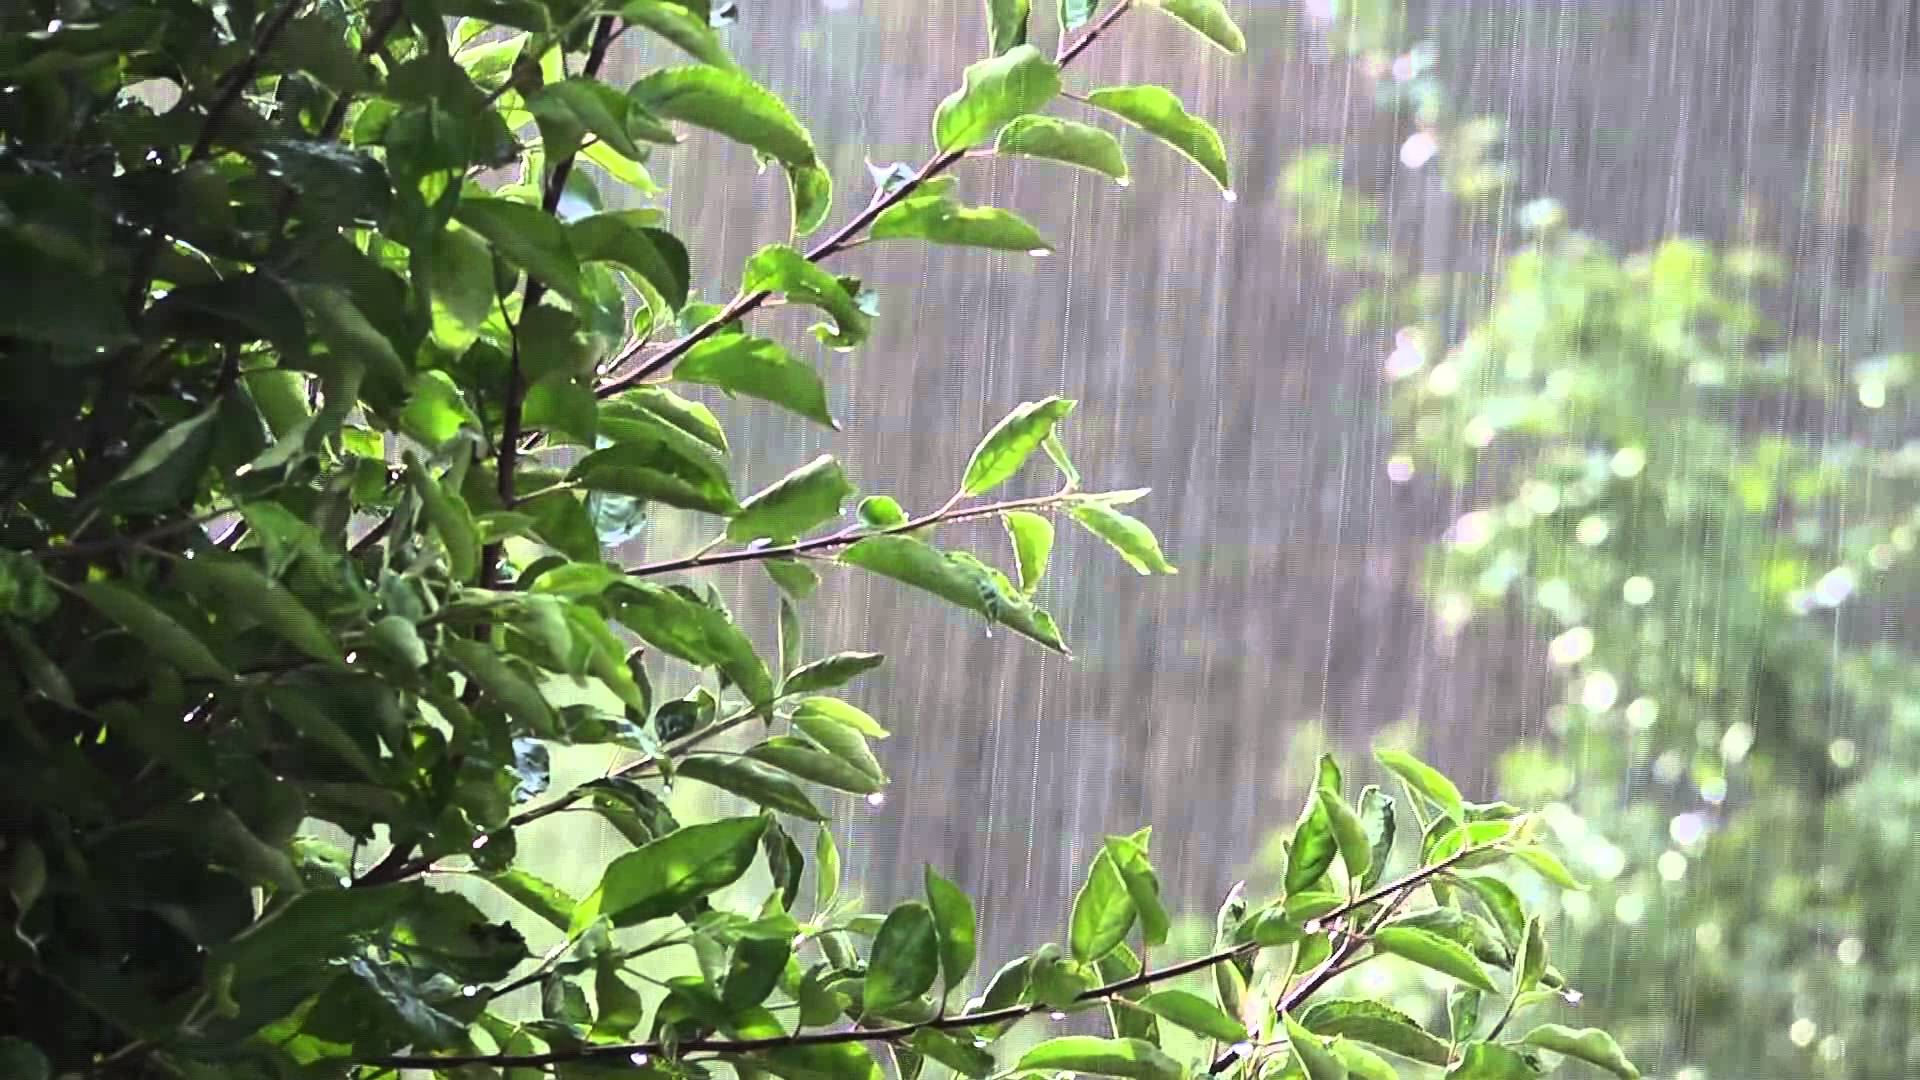 Rainy Fall Day Wallpaper 3 Ways The Recent Rain Hurt Your Tree And How To Fix Them